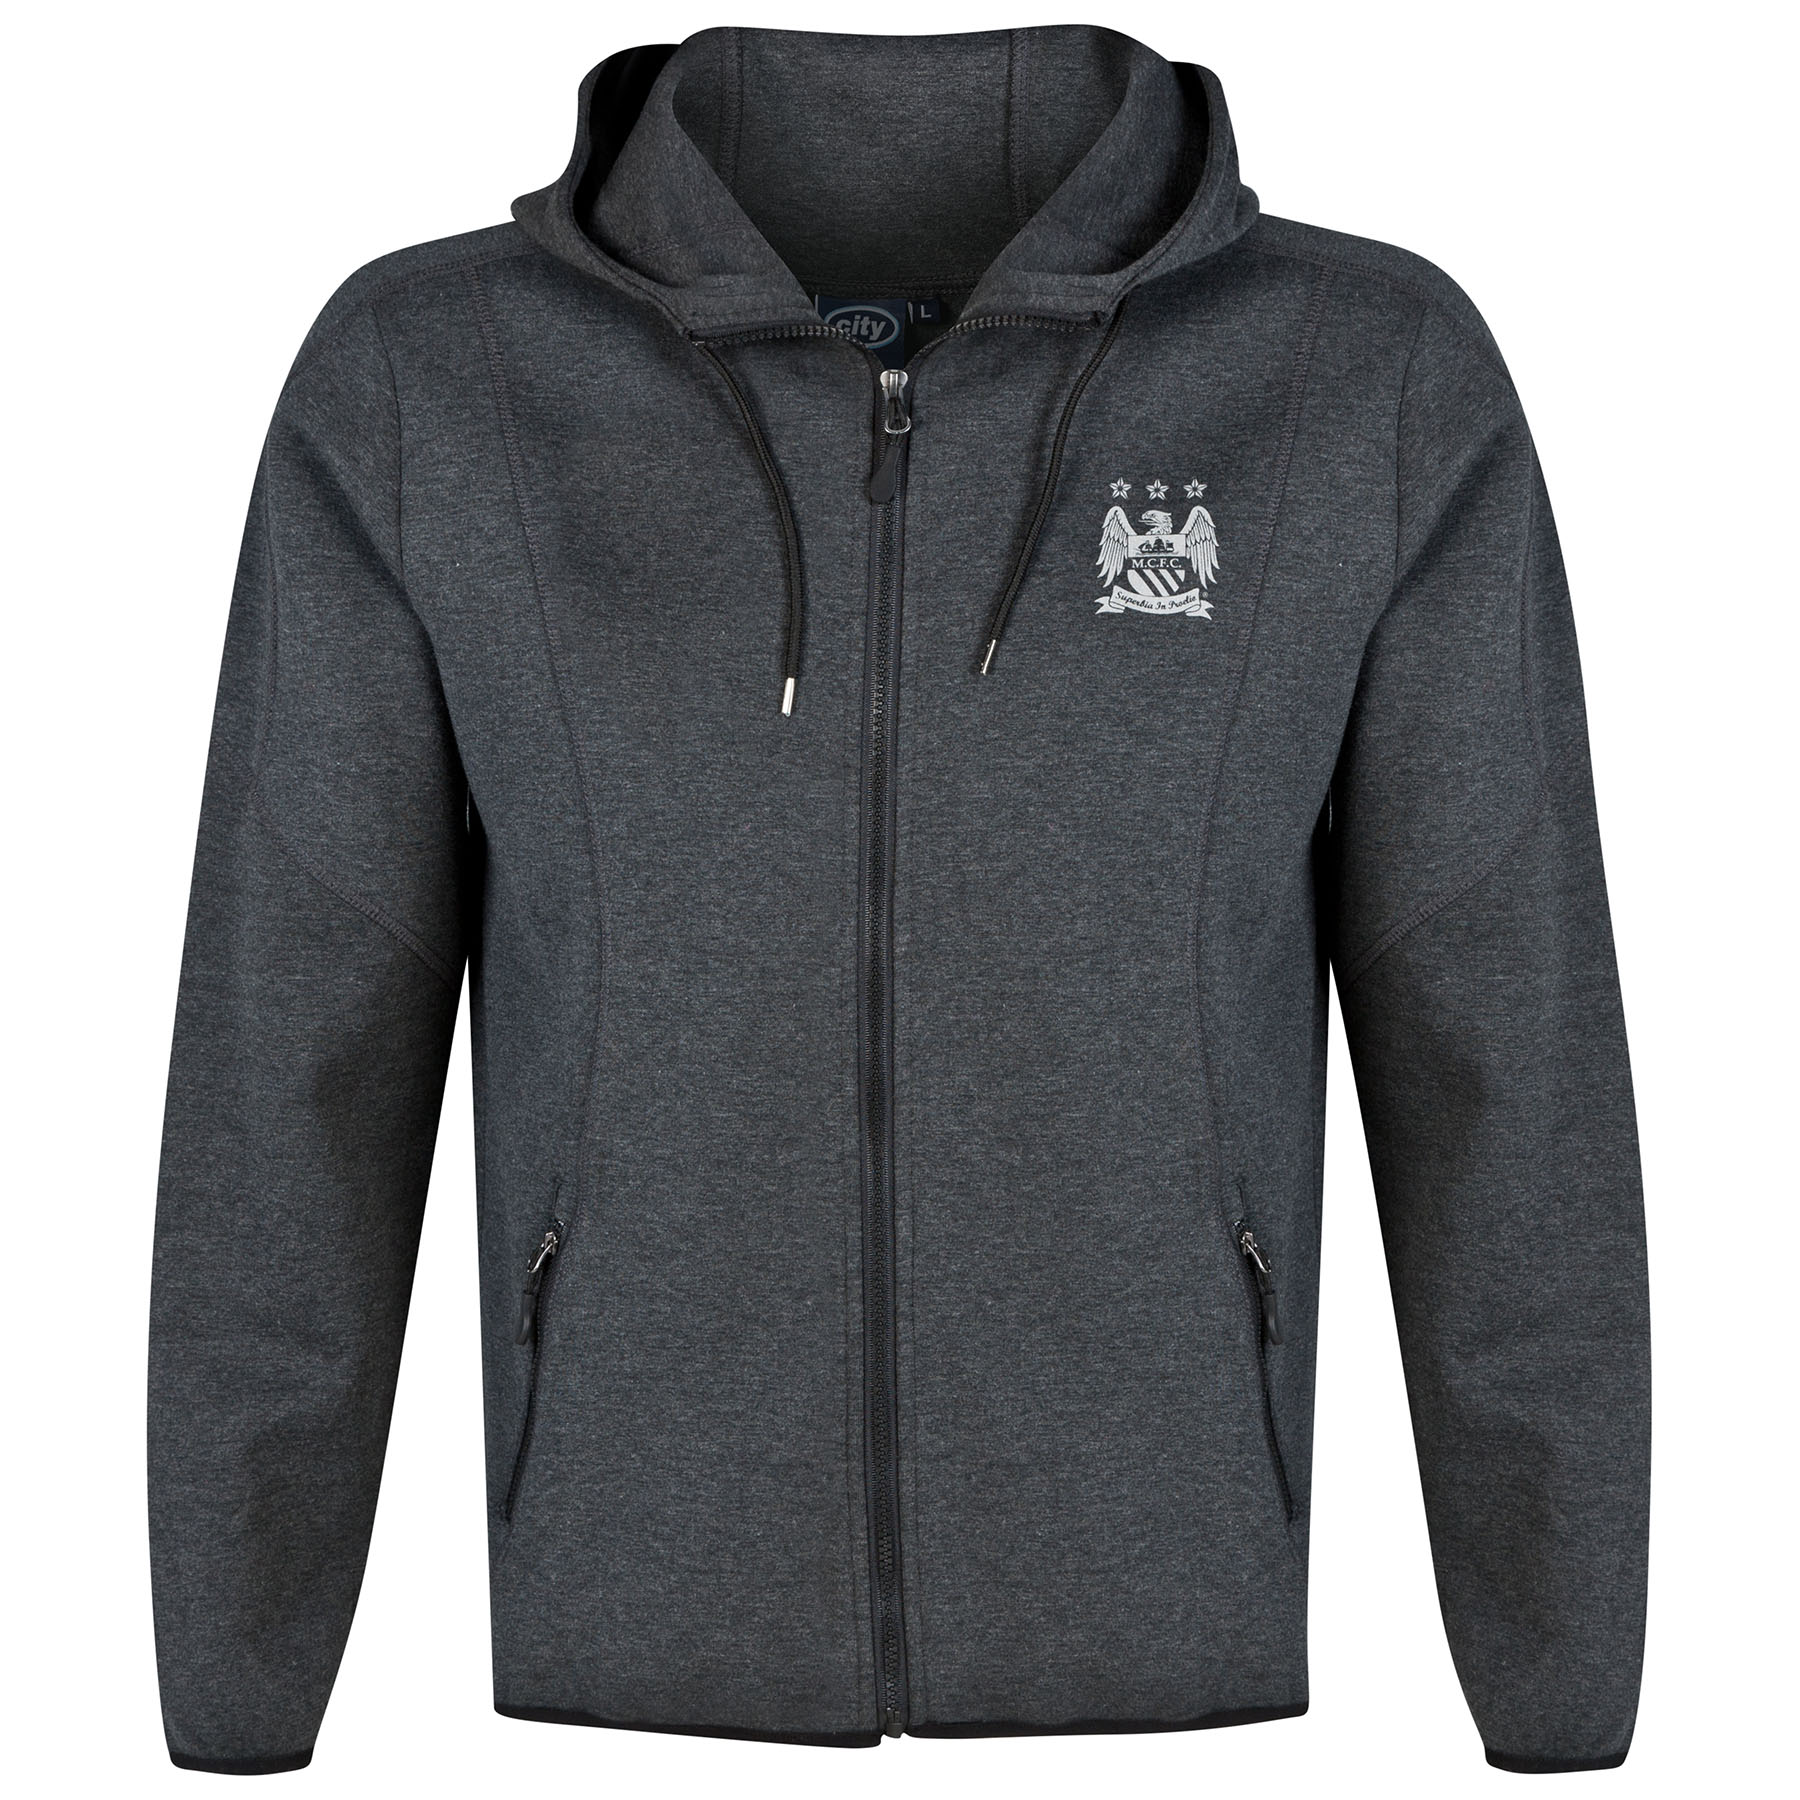 Manchester City Technical Hoodie - Charcoal Marl - Mens